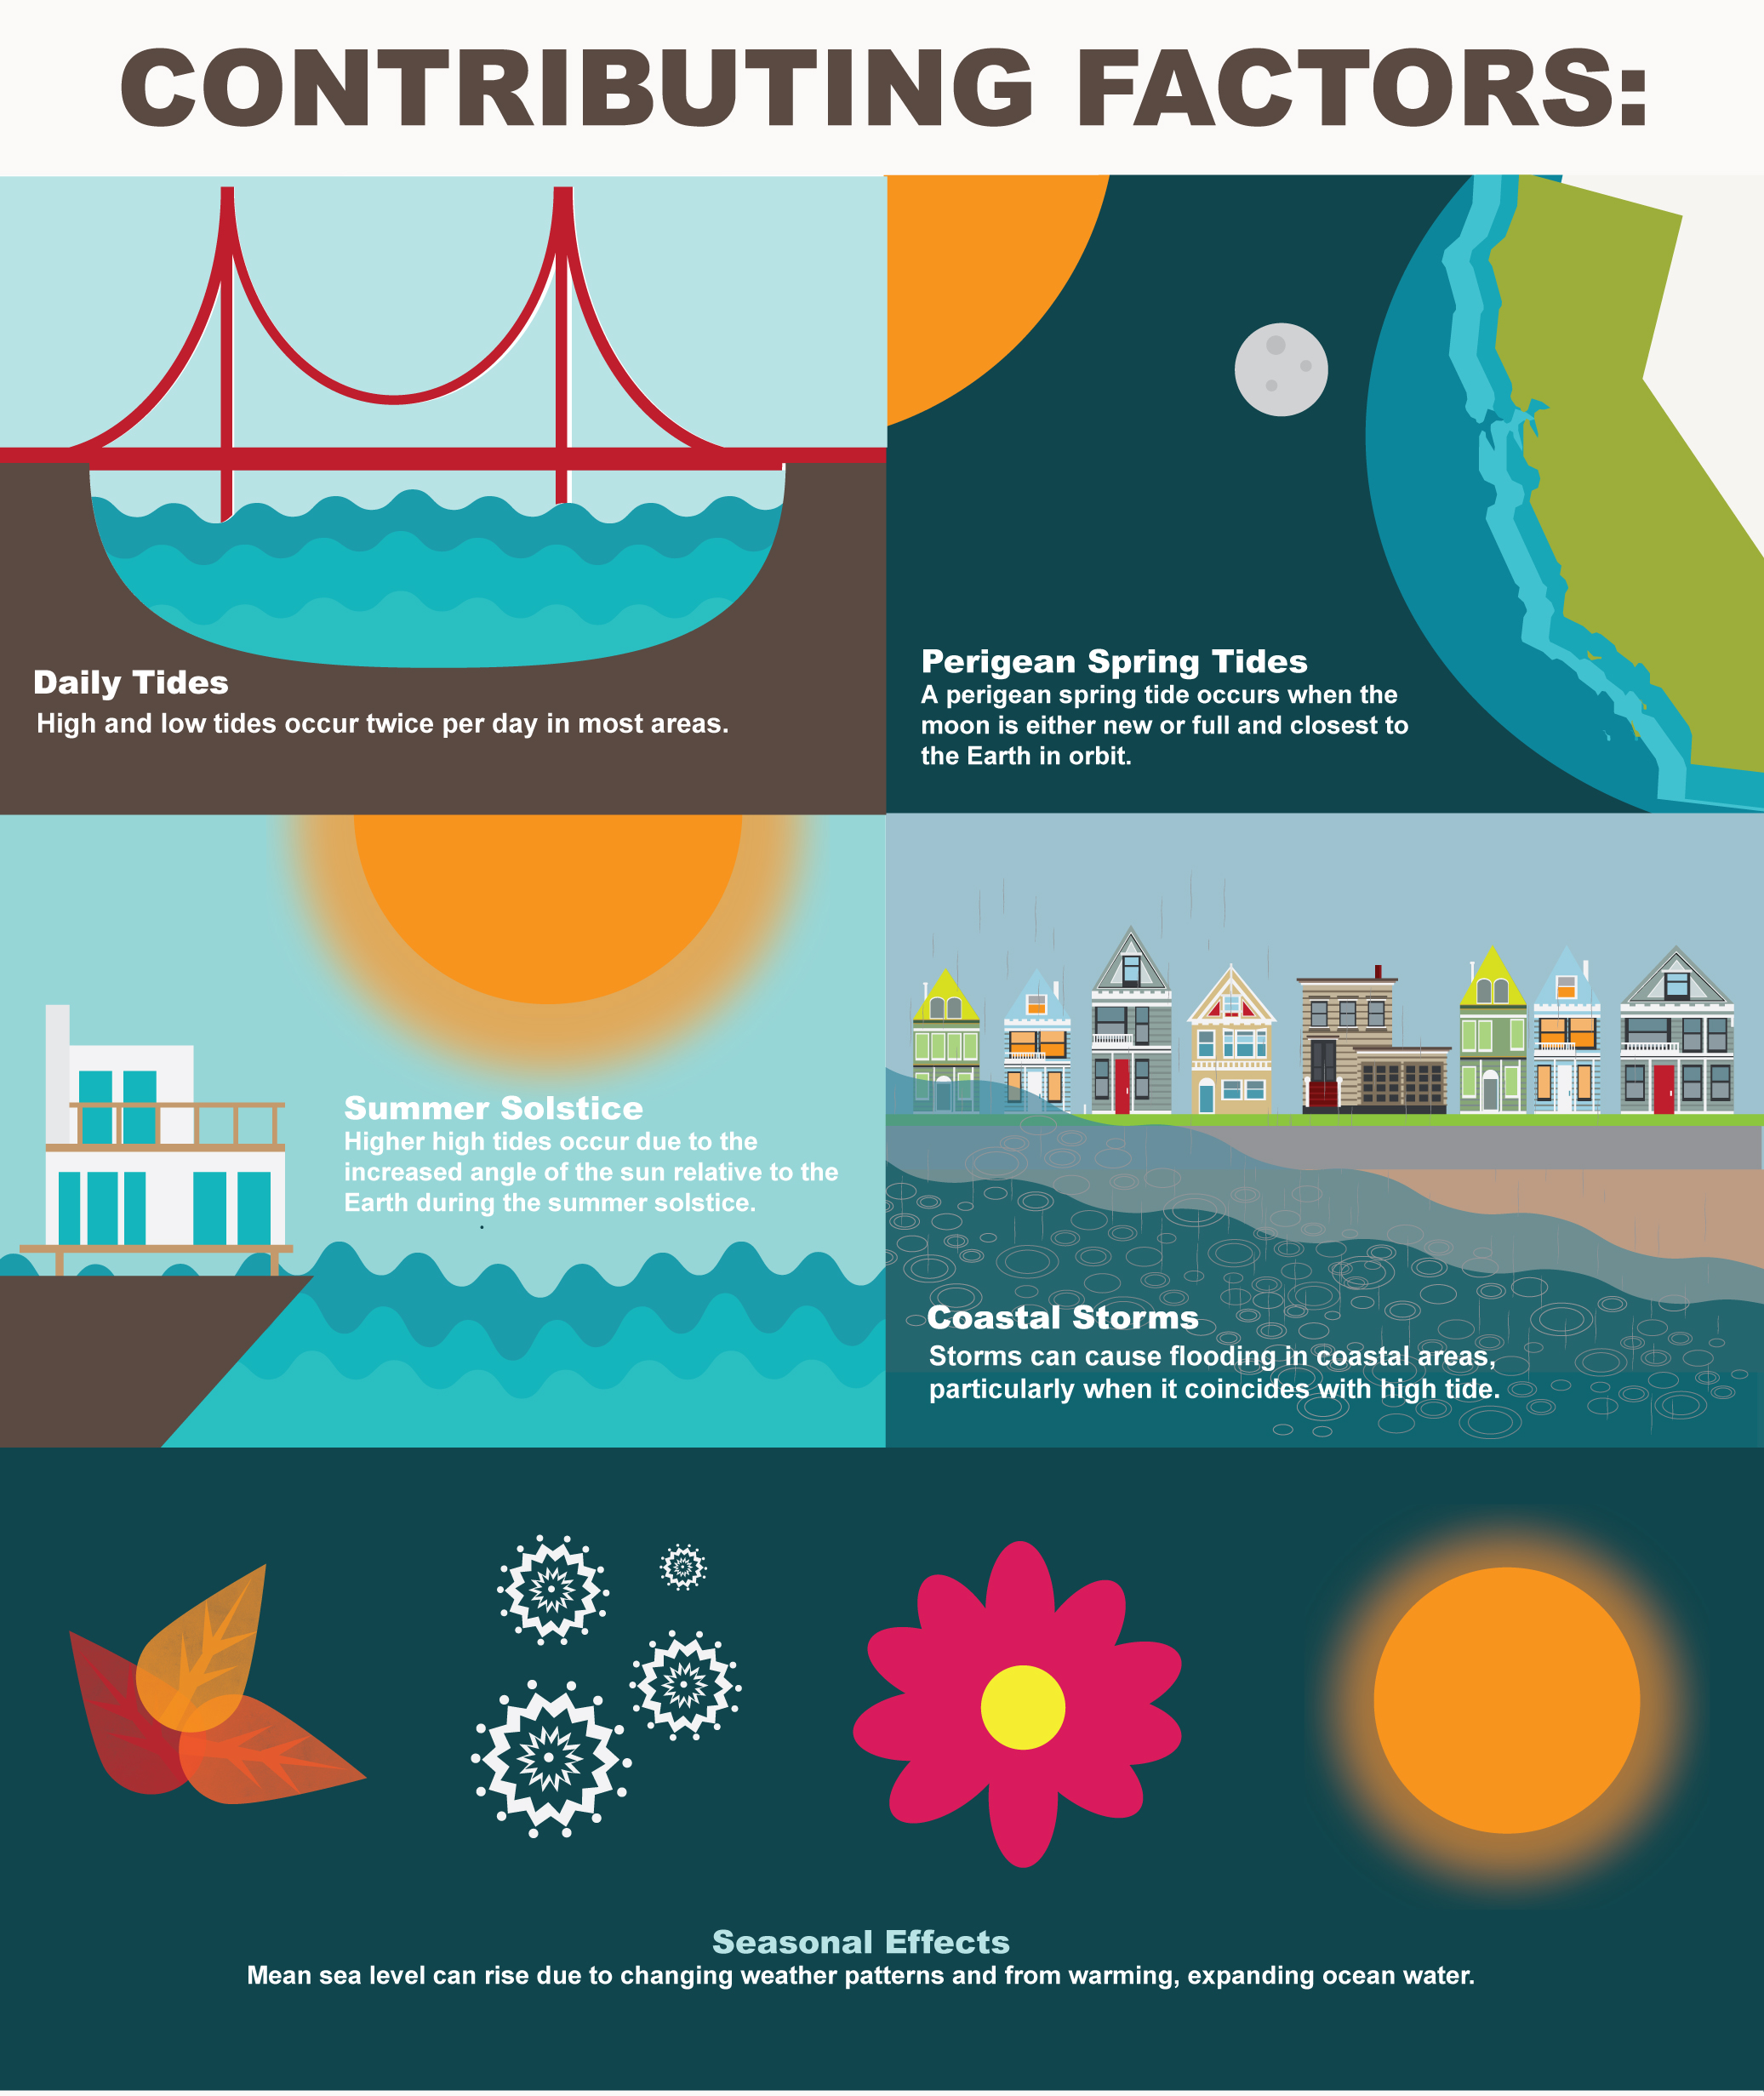 Graphic illustrating contributing factors to high tides